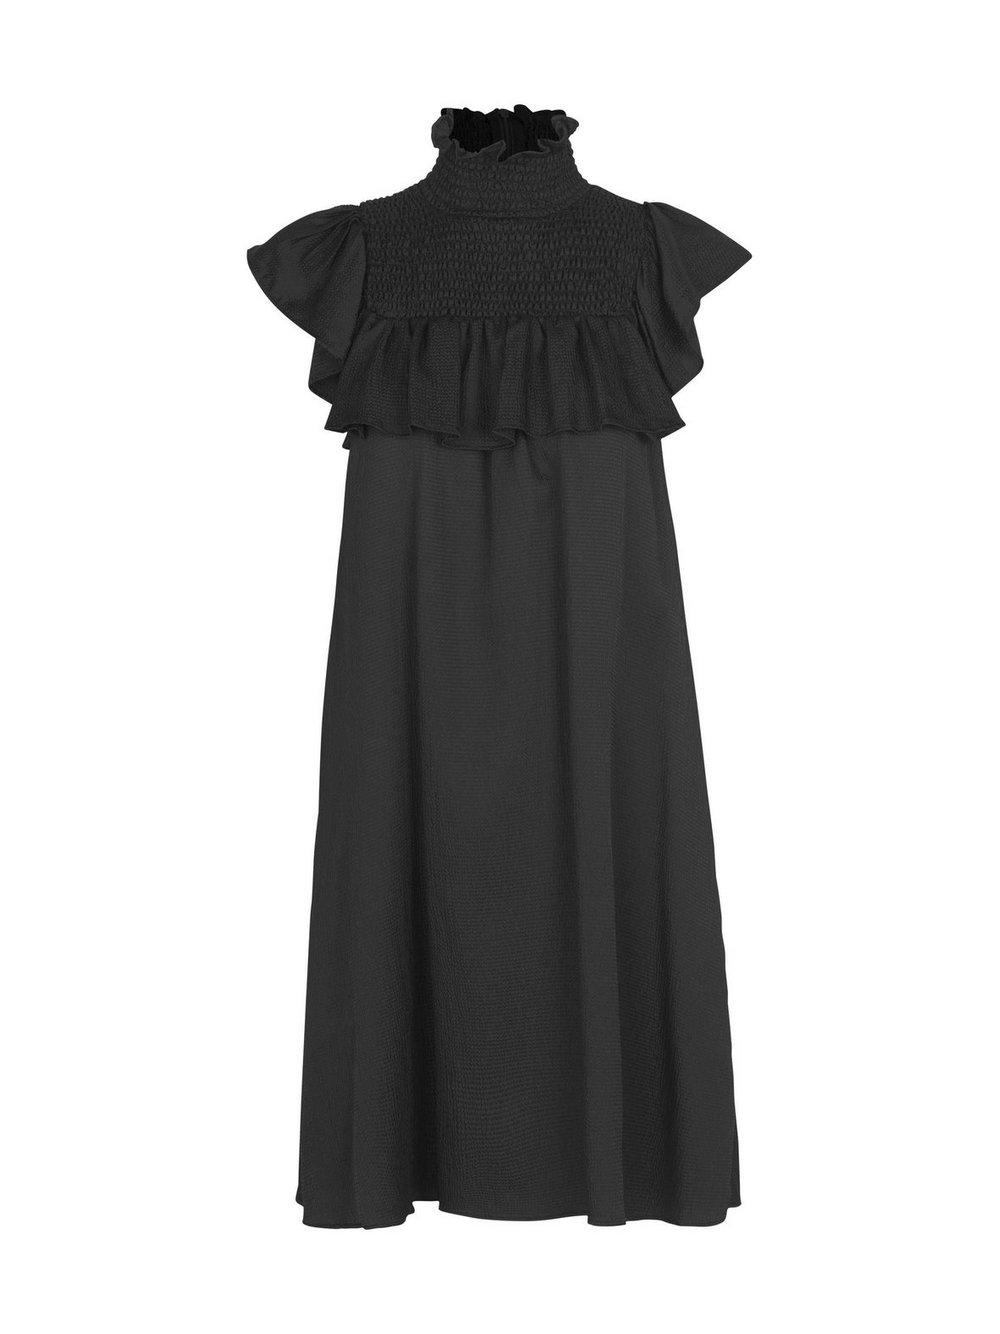 Aelaney High Neck Dress